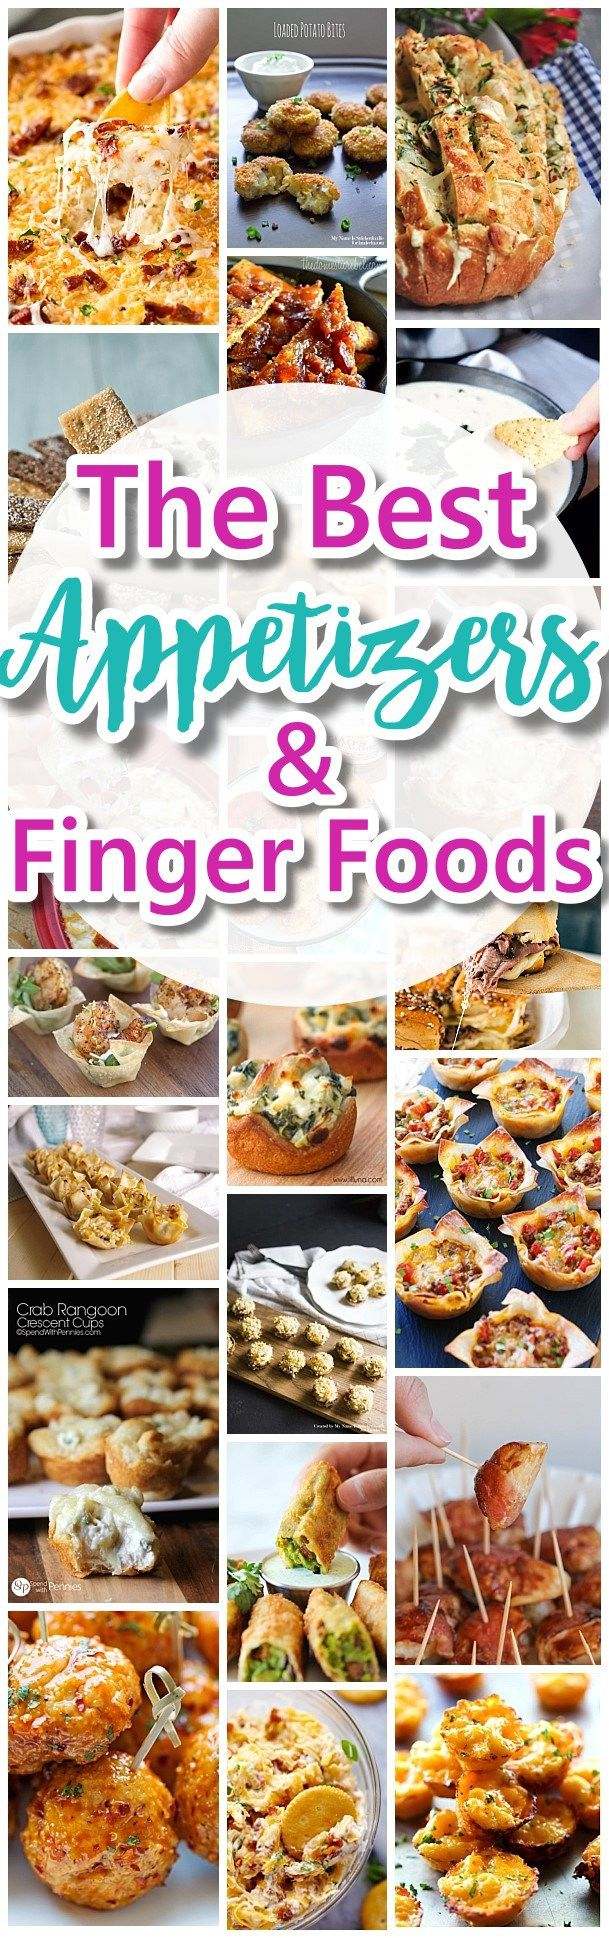 The Best Easy Party Appetizers, Delicious Dips and Finger Foods Recipes - Quick family friendly snacks for Holidays, Tailgating, New Year's Eve, Birthday and Super Bowl Parties - Dreaming in DIY